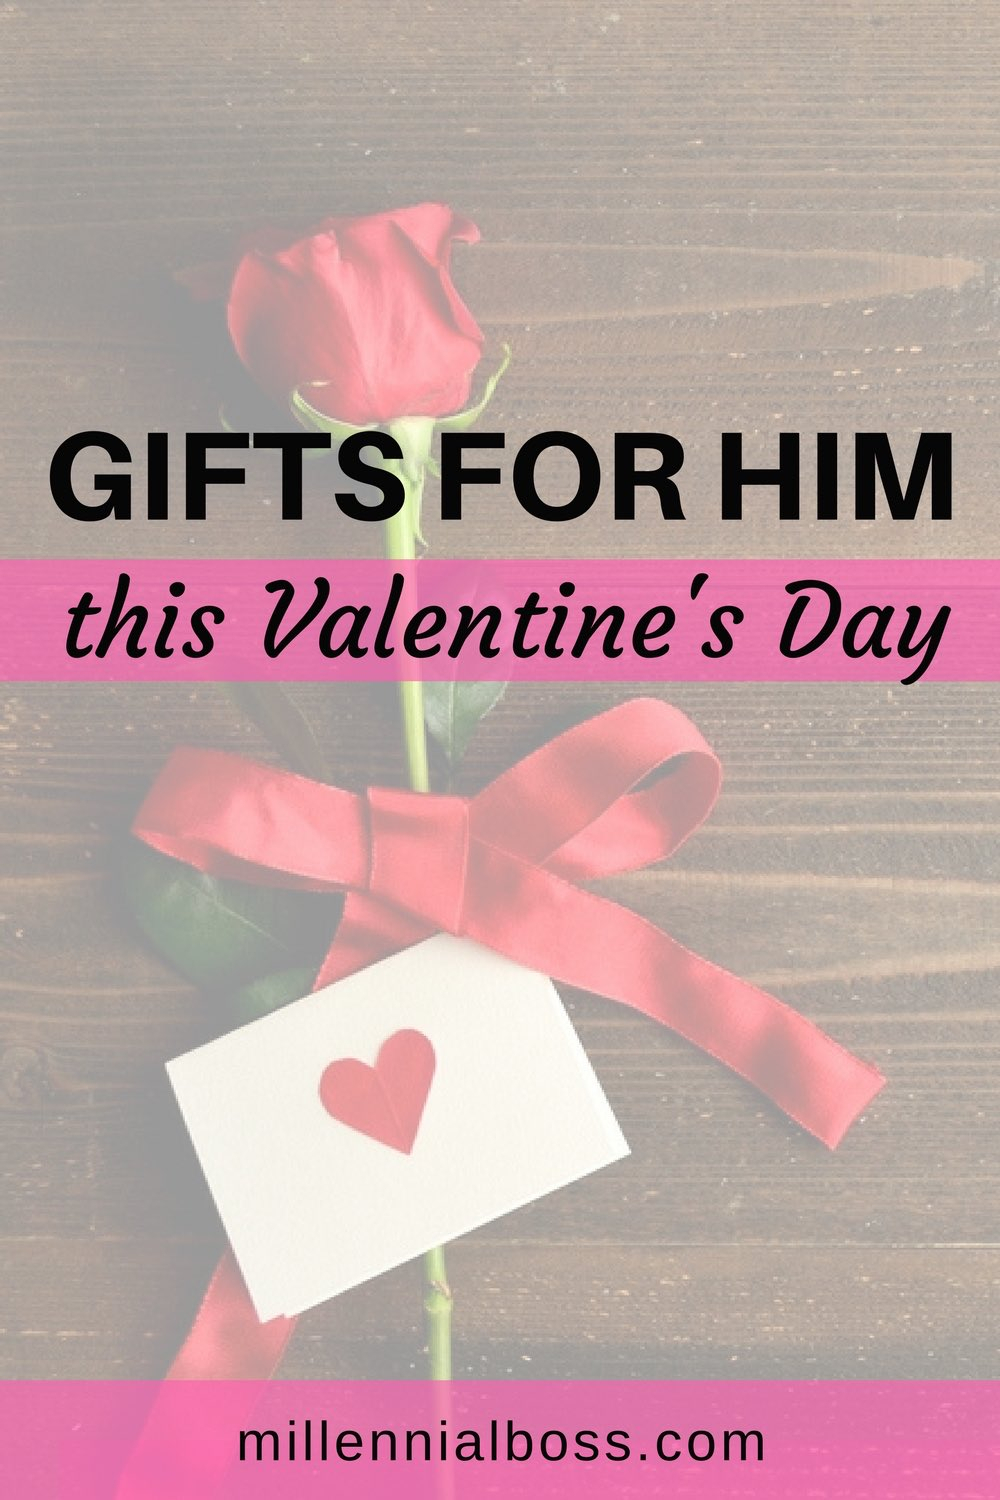 10 Elegant Good Gift Ideas For Valentines Day top 25 valentines day gifts for him millennial boss 1